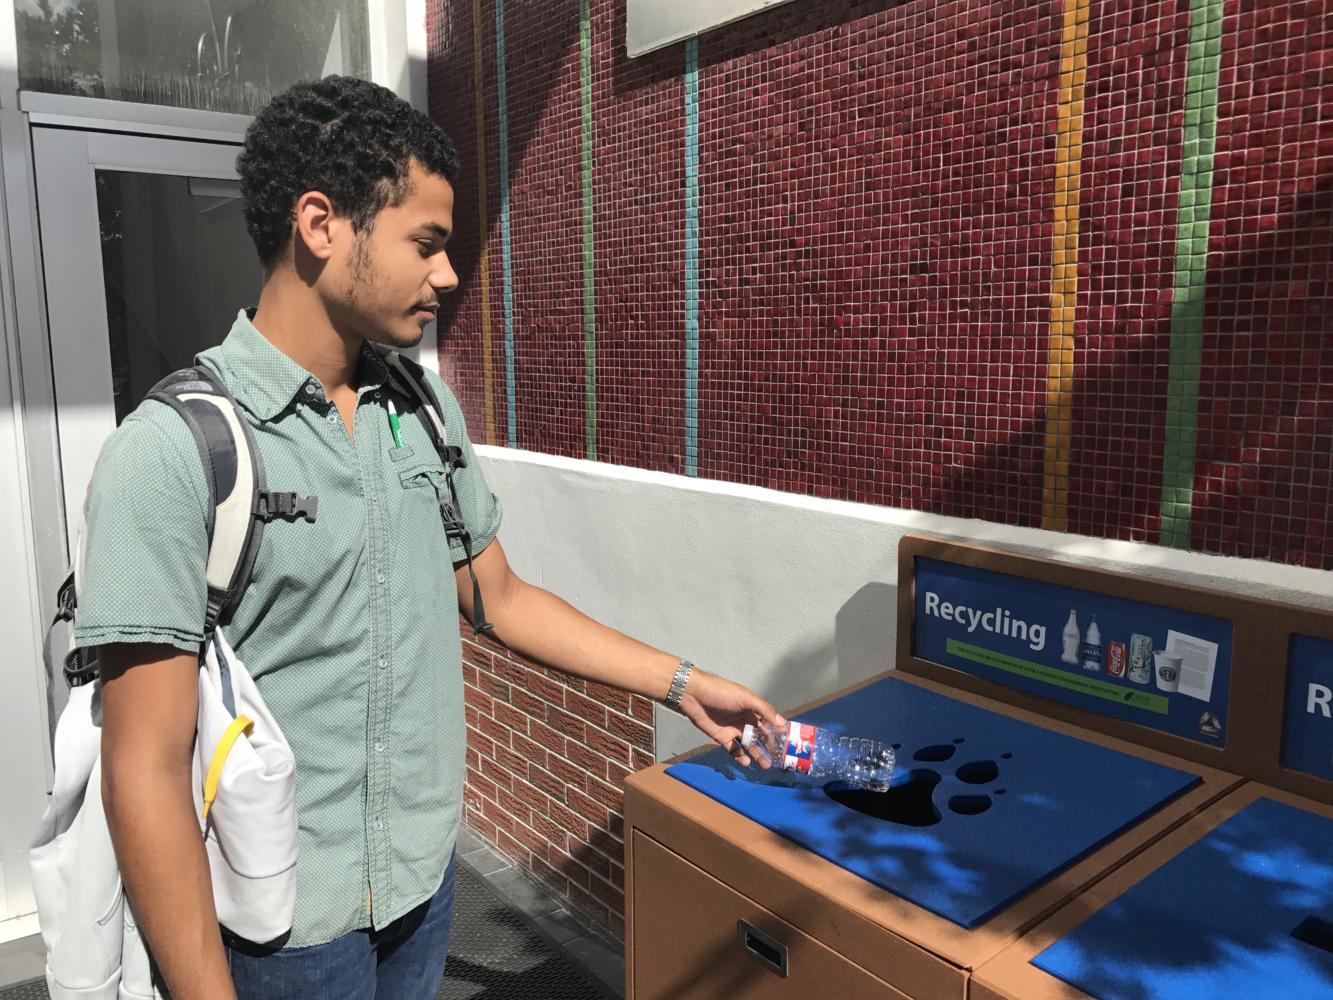 A student walks out of the Dana Center on Loyola University's campus and tosses a bottle into nearby recycling bins.  The new bins were intended to be more attractive and unique with hopes of enticing individuals to use them more frequently. Photo credit: John Casey